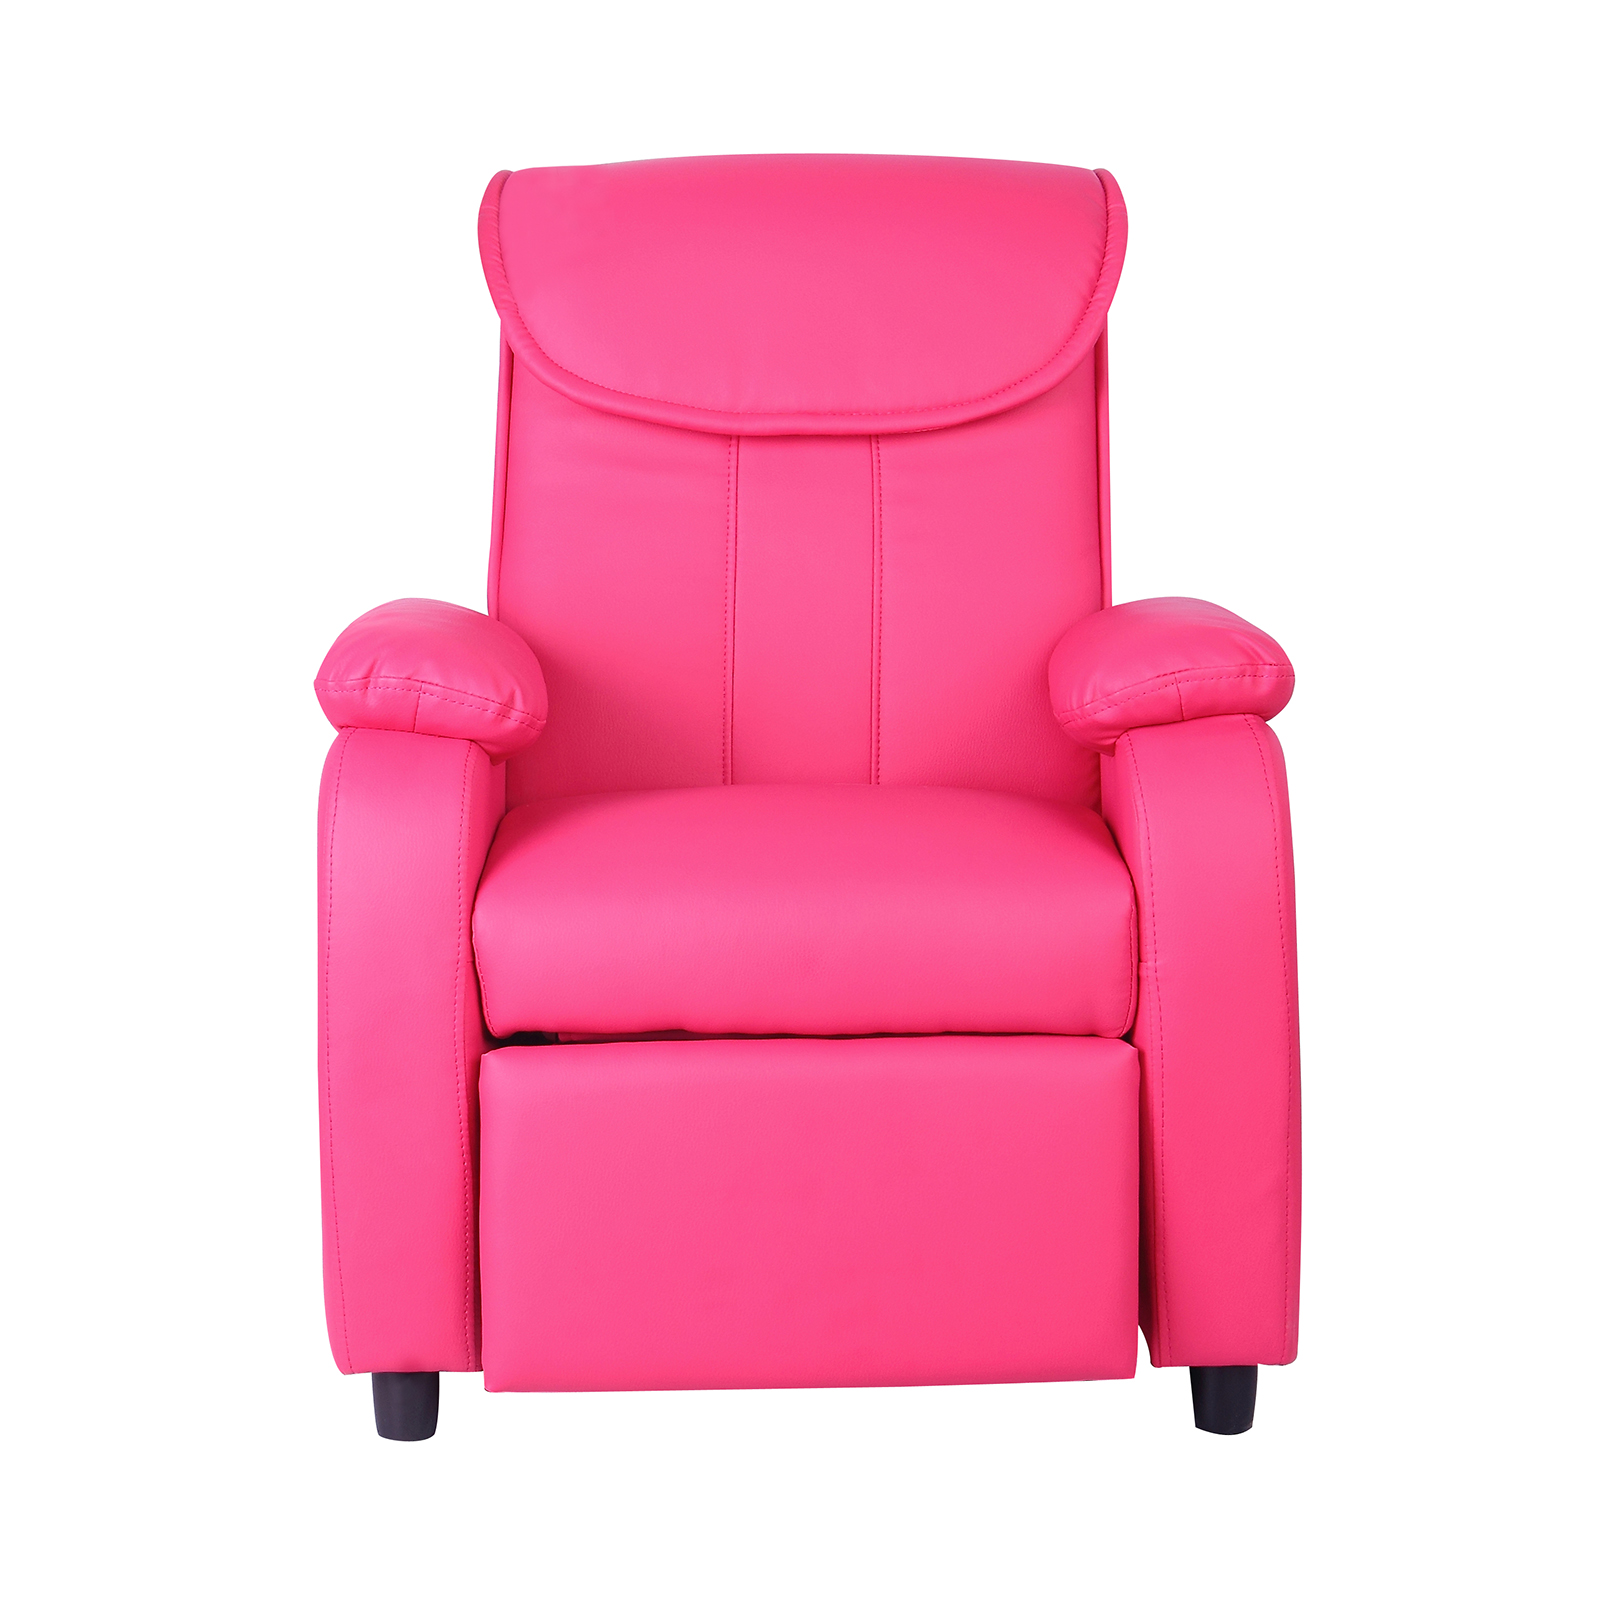 Childrens Luxury Recliner Chair fy Faux Leather Armchair